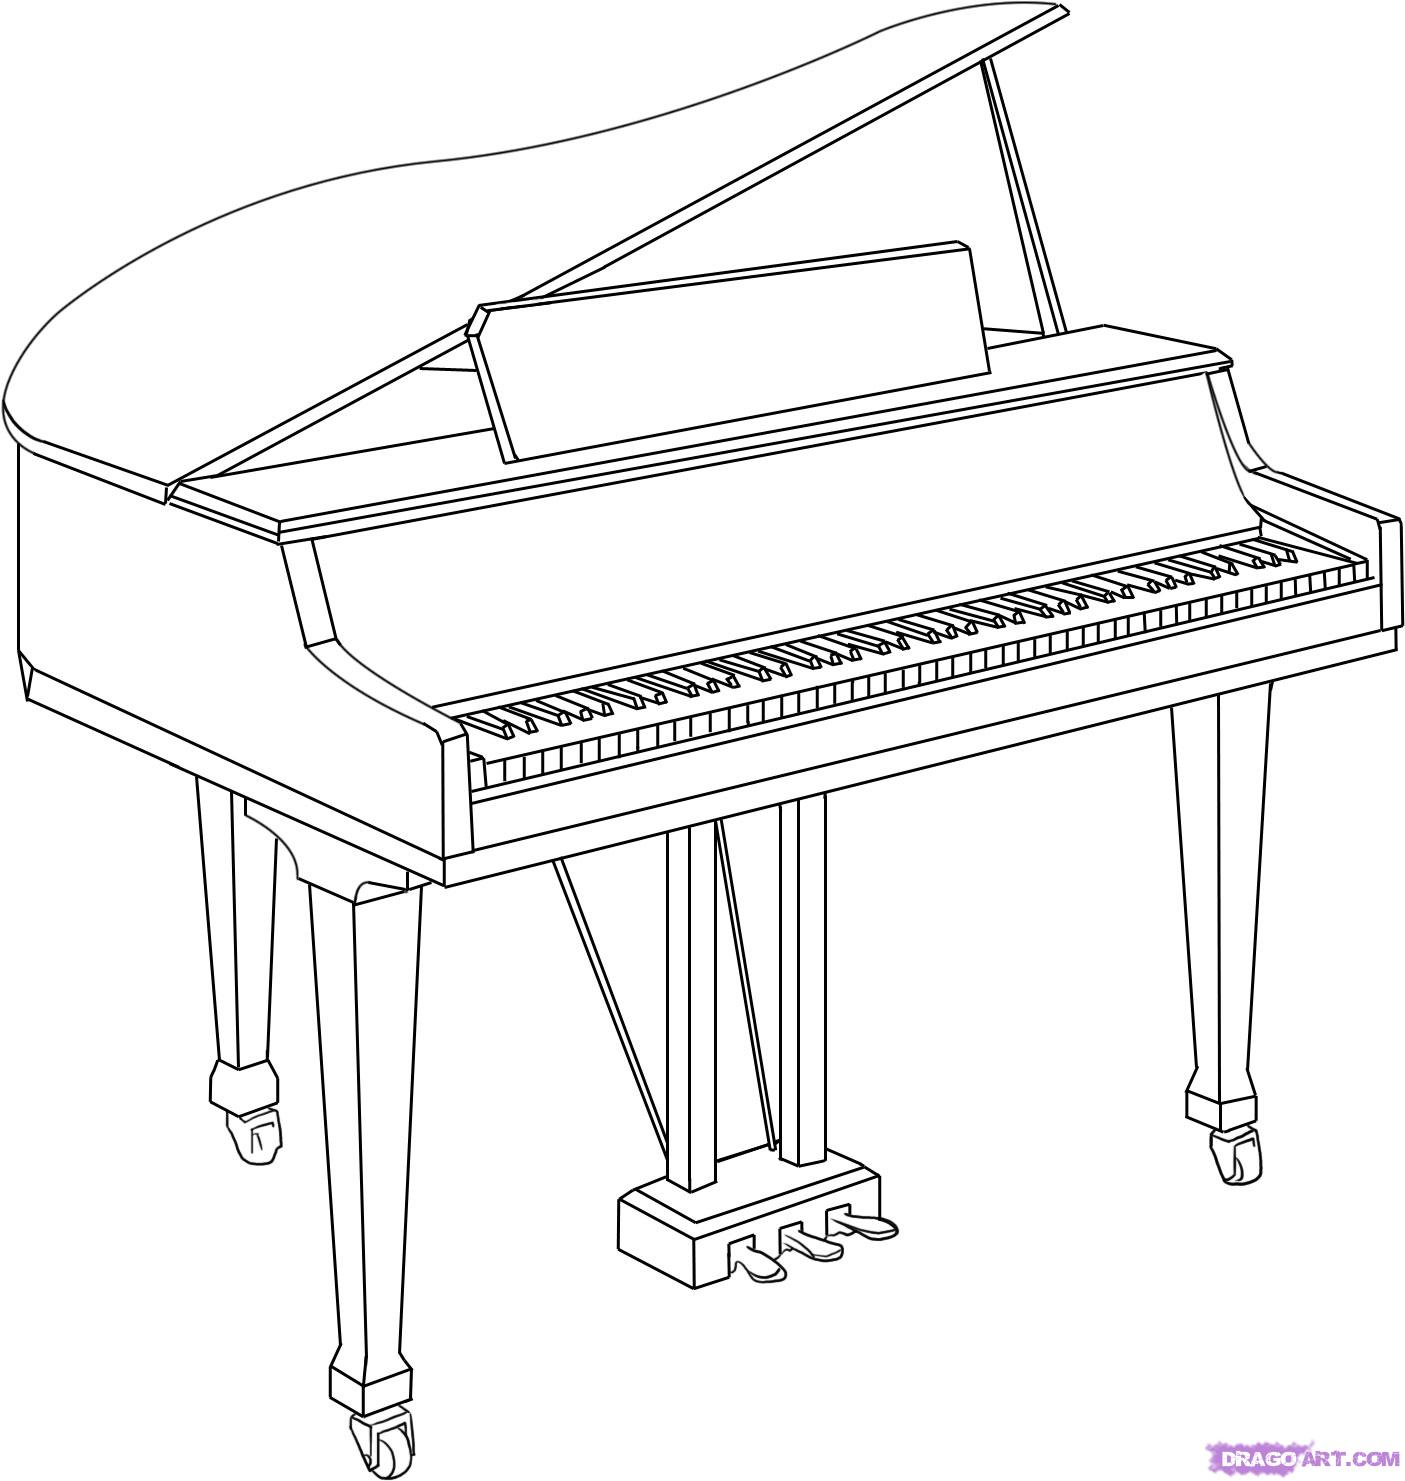 1405x1481 6. How To Draw A Piano